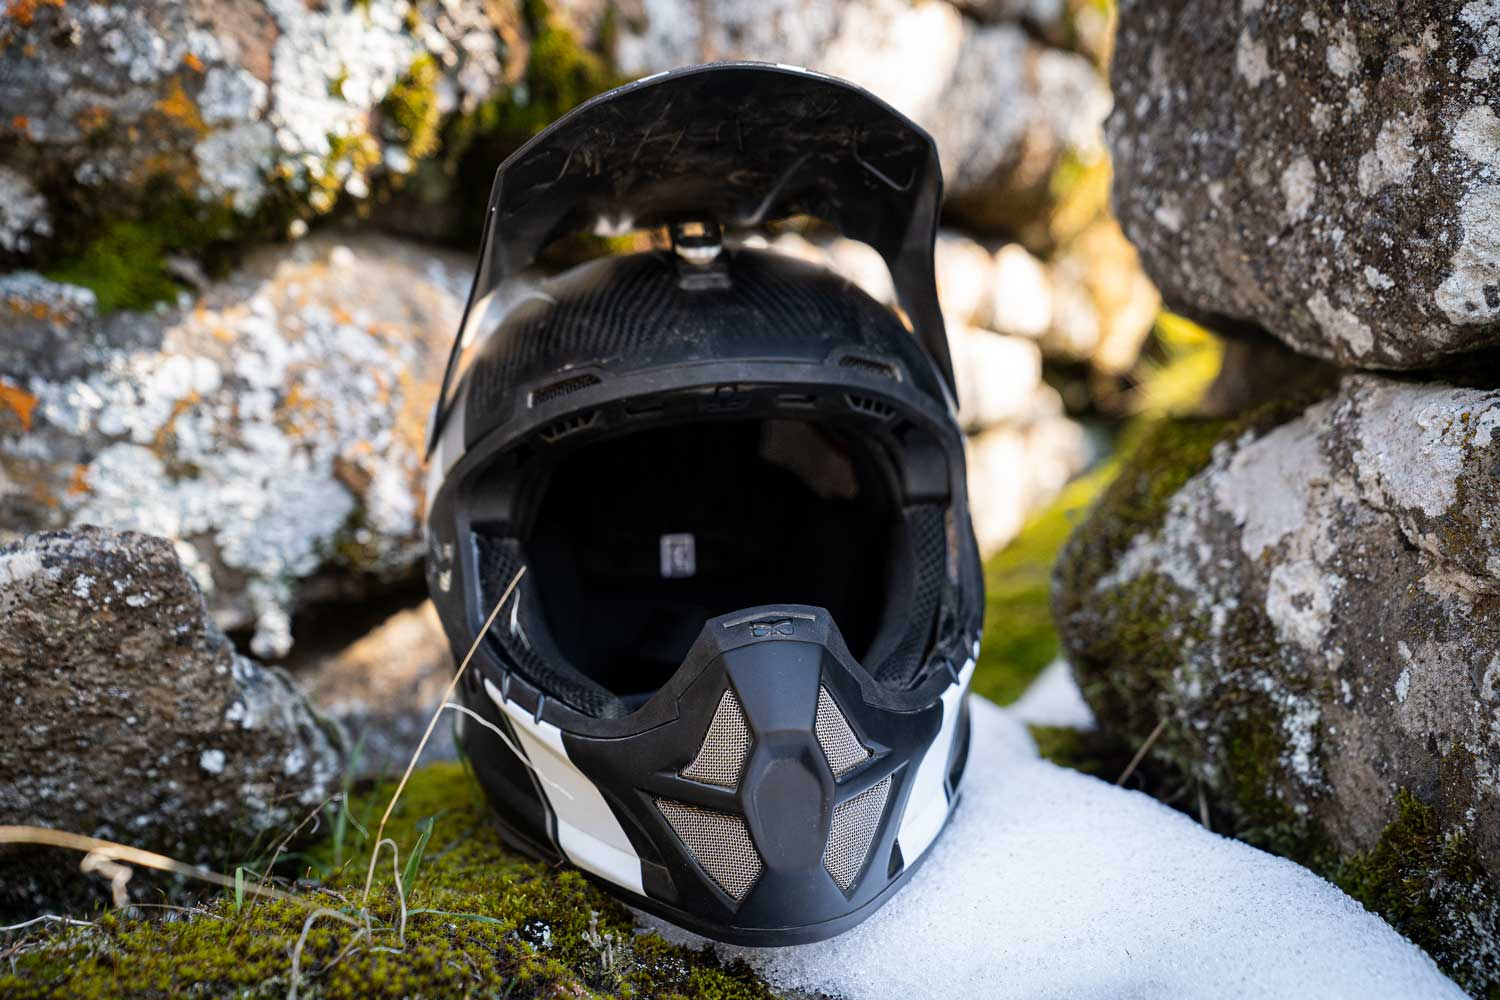 Kali Shiva 2.0 Carbon Moto Helmet Review